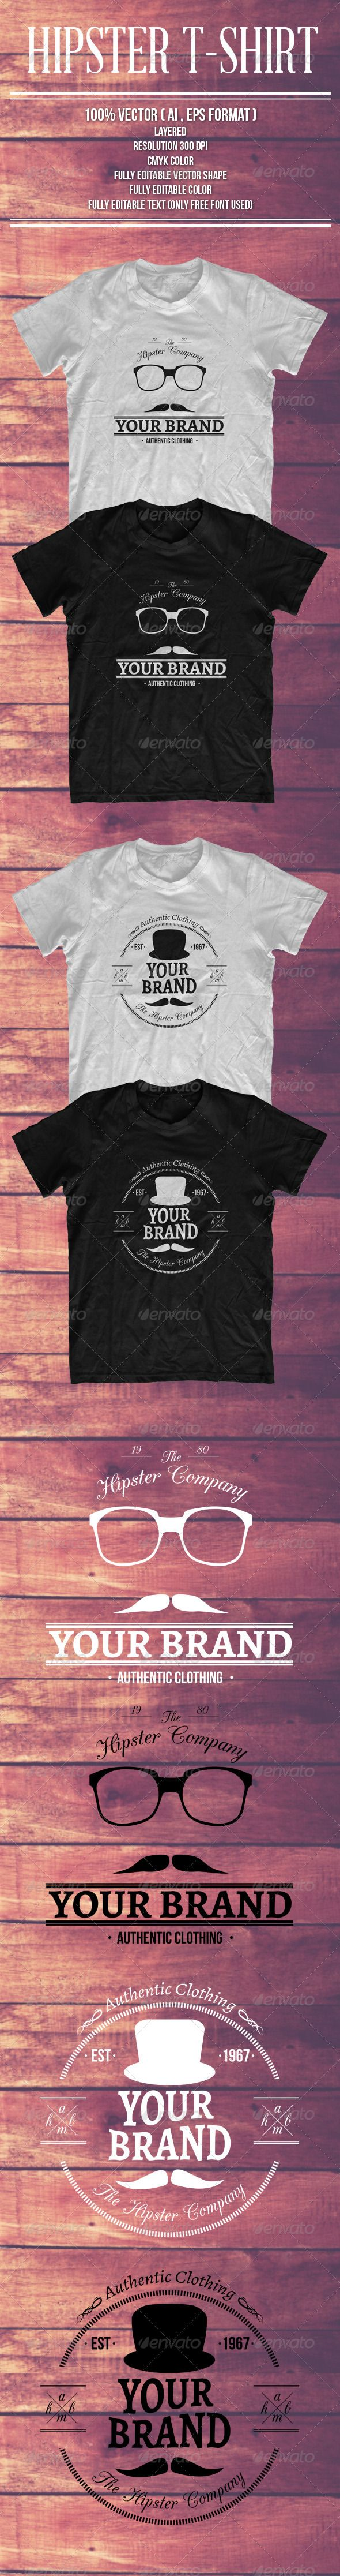 Shirt design resolution - 2 Hipster Style Tshirts